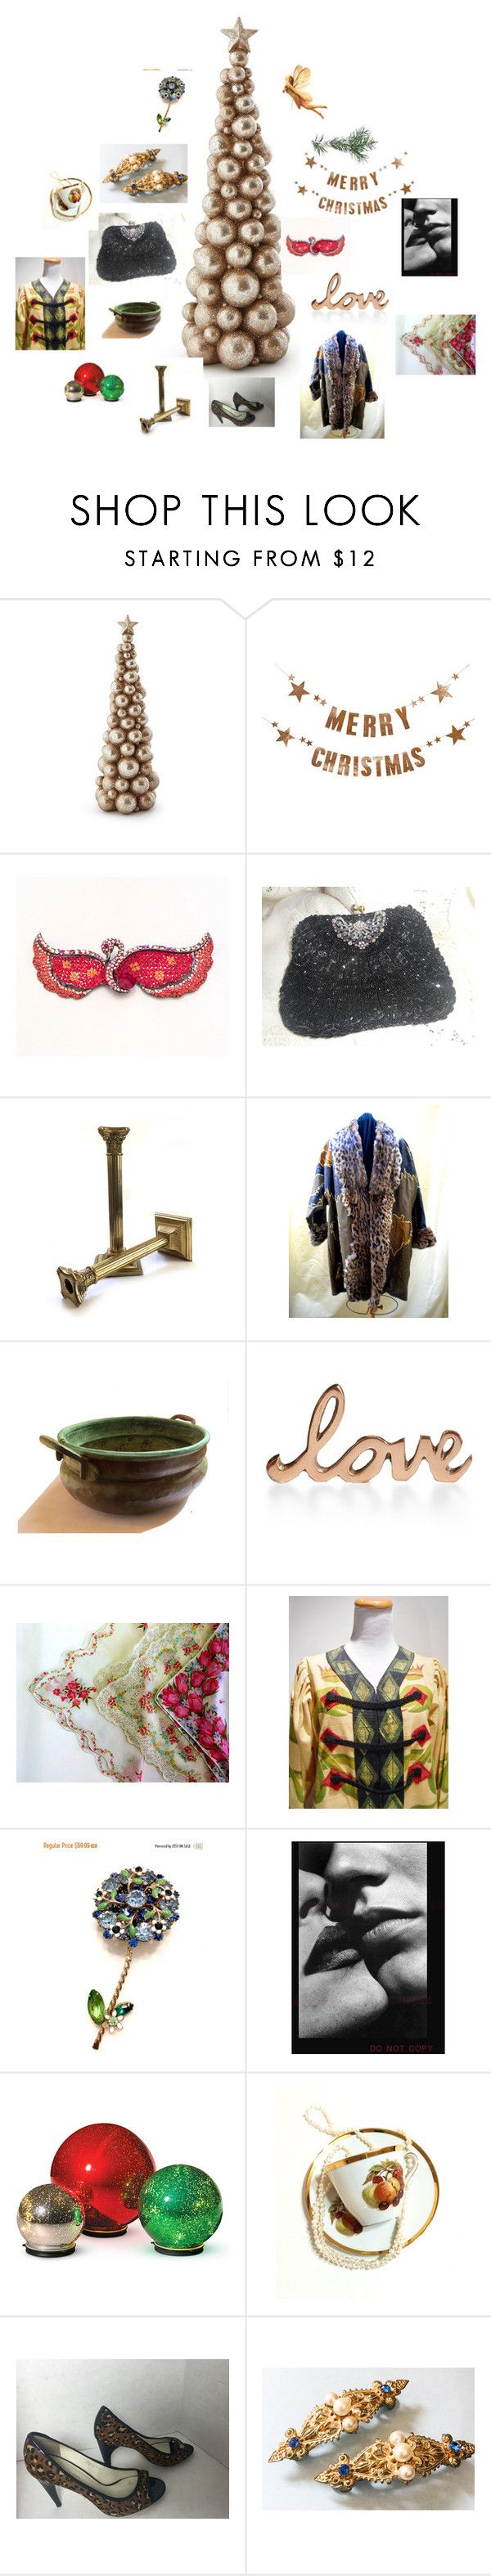 """Christmas Gift Giving For Her"" by betty055 ❤ liked on Polyvore featuring Bloomingville, Butler & Wilson, Home Design Studio, Improvements and Via Spiga"